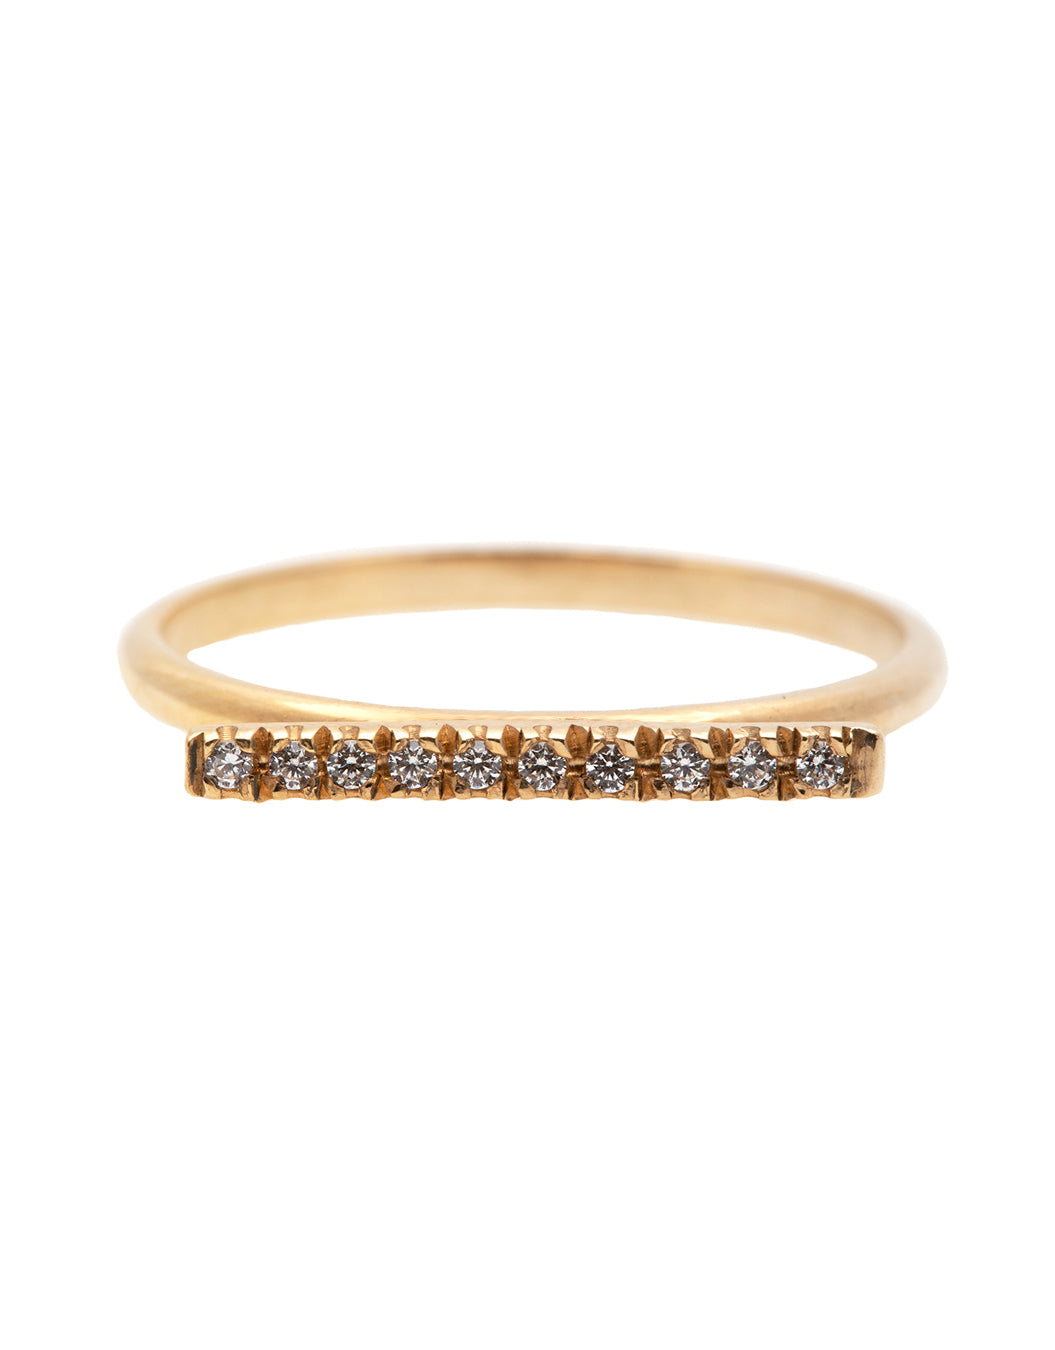 A dainty 14k yellow gold ring, with a horizontal bar on top, set with ten tiny white diamonds.